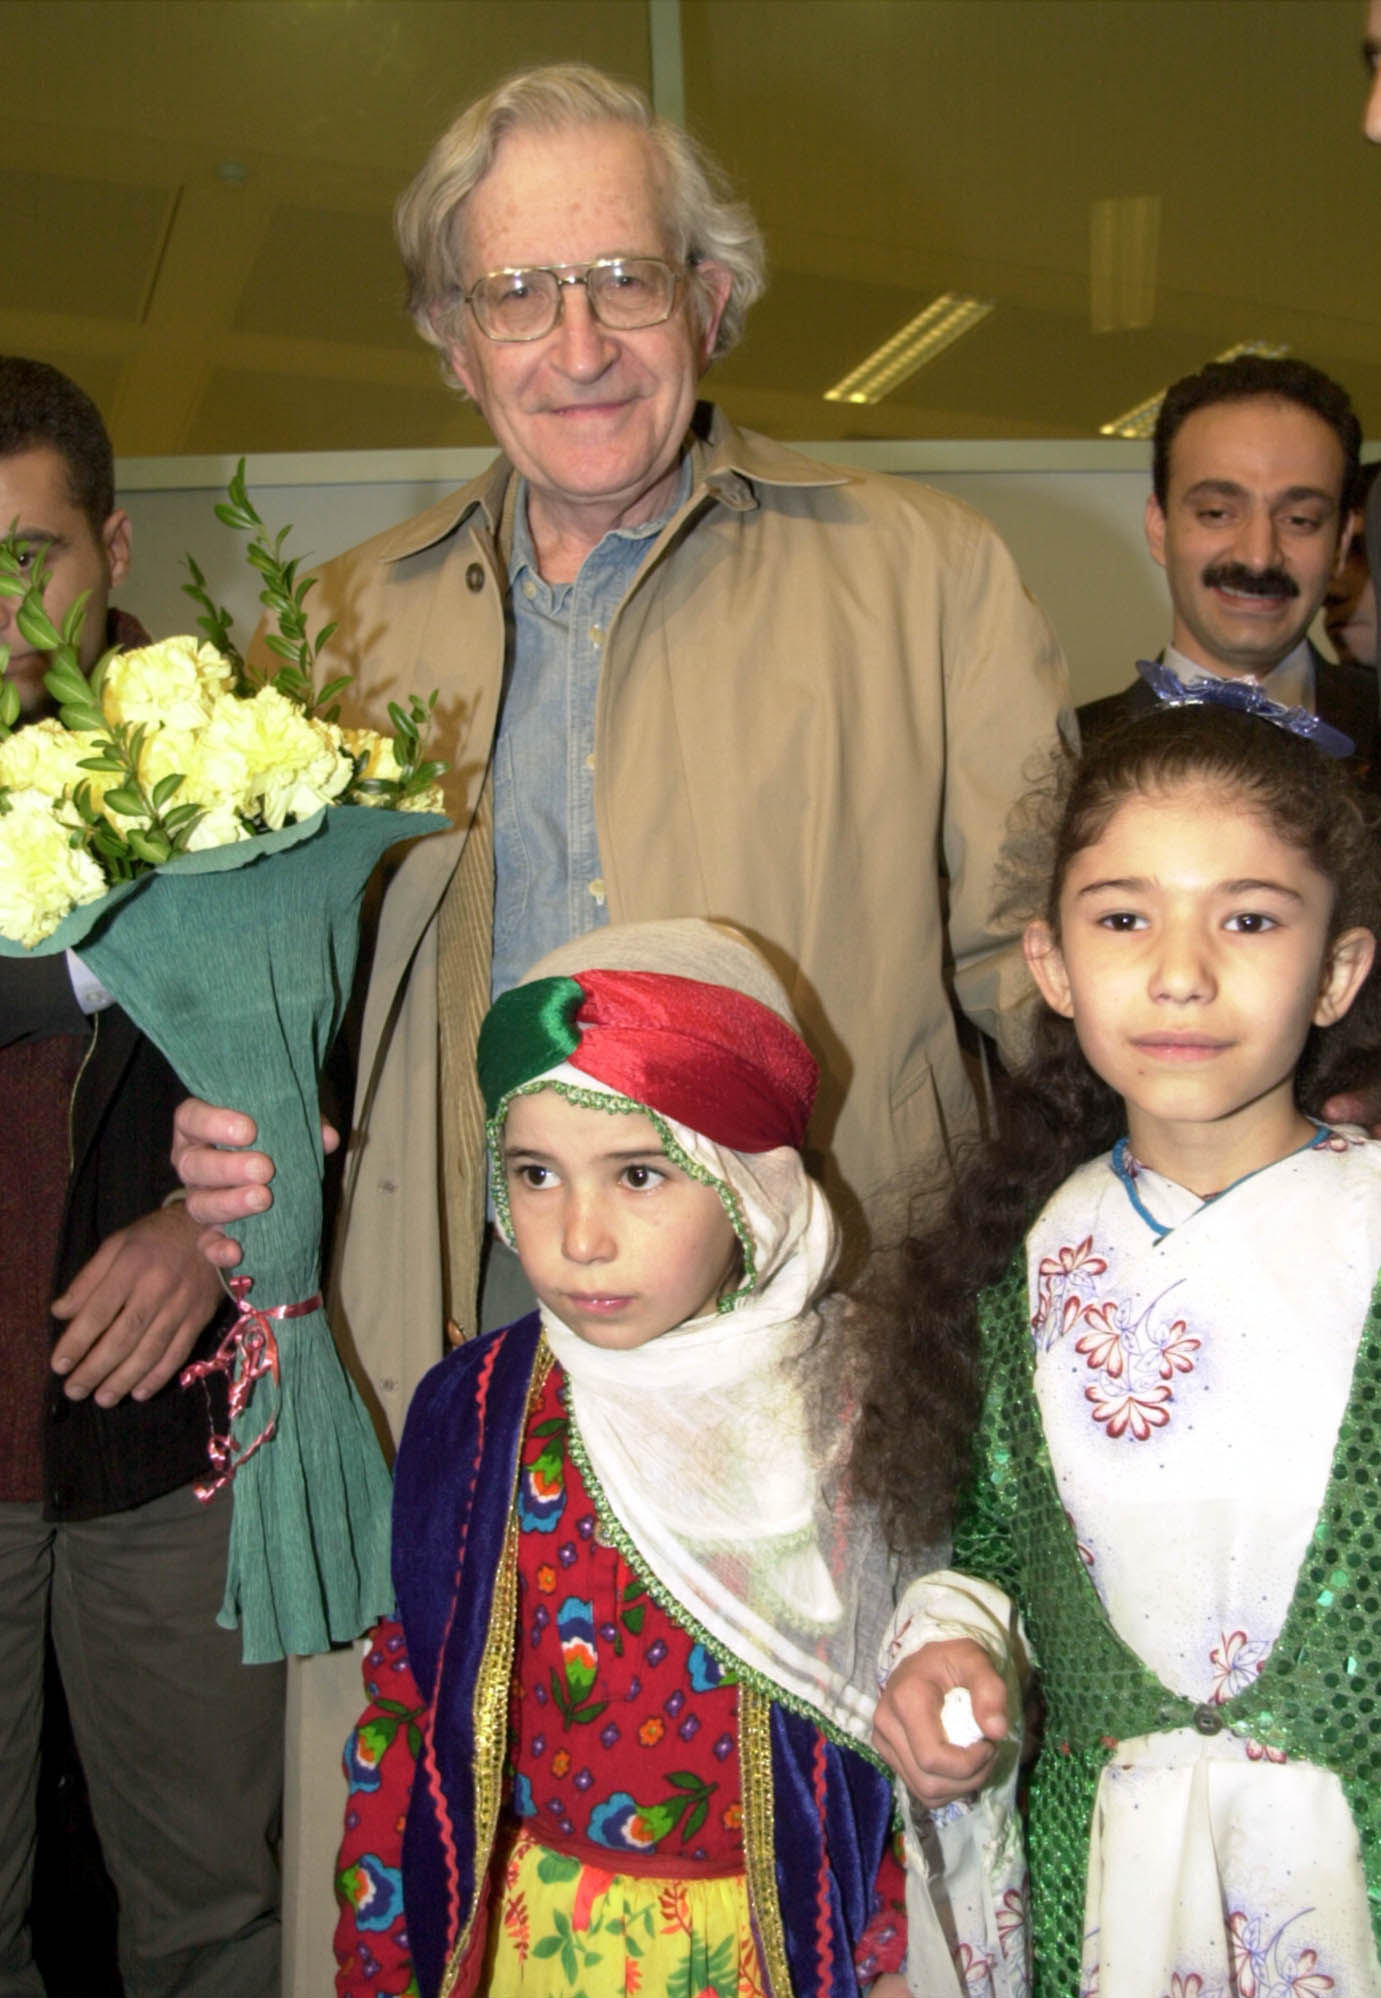 Noam Chomsky, the American linguist, is welcomed by children in traditional Kurdish outfits at Istanbul's Ataturk airport, Tuesday Feb. 12, 2002